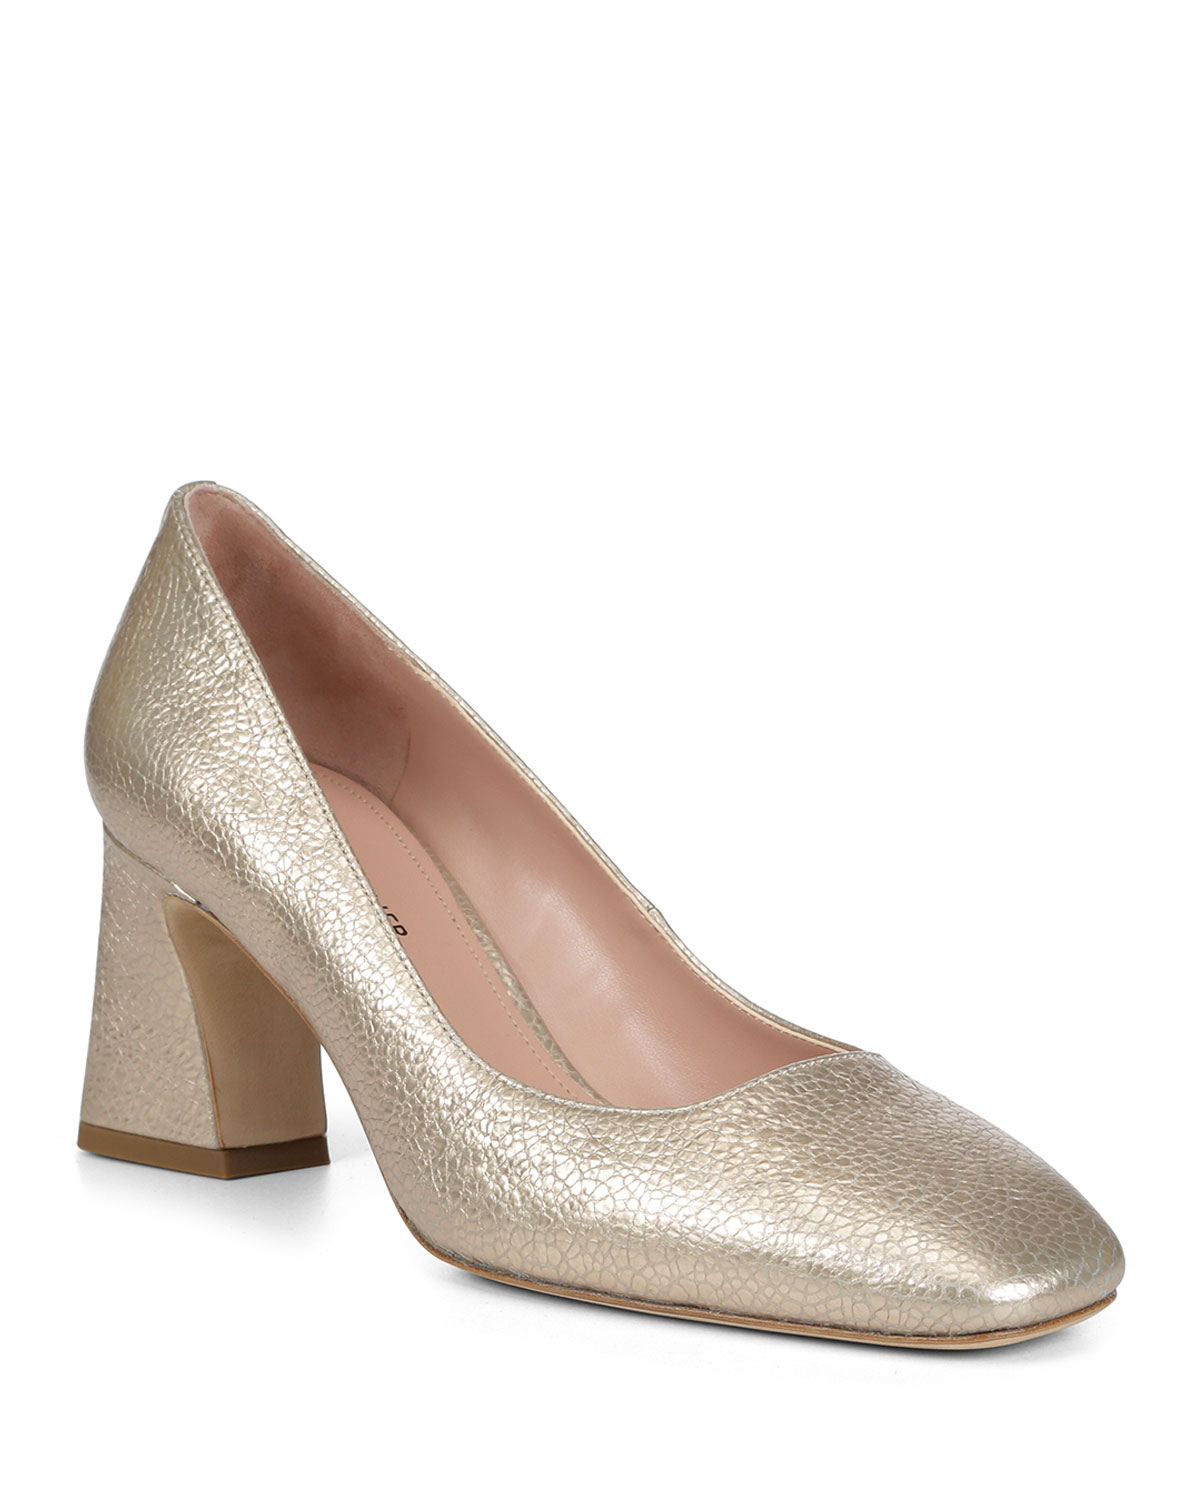 Ellio Metallic Square-Top Pumps